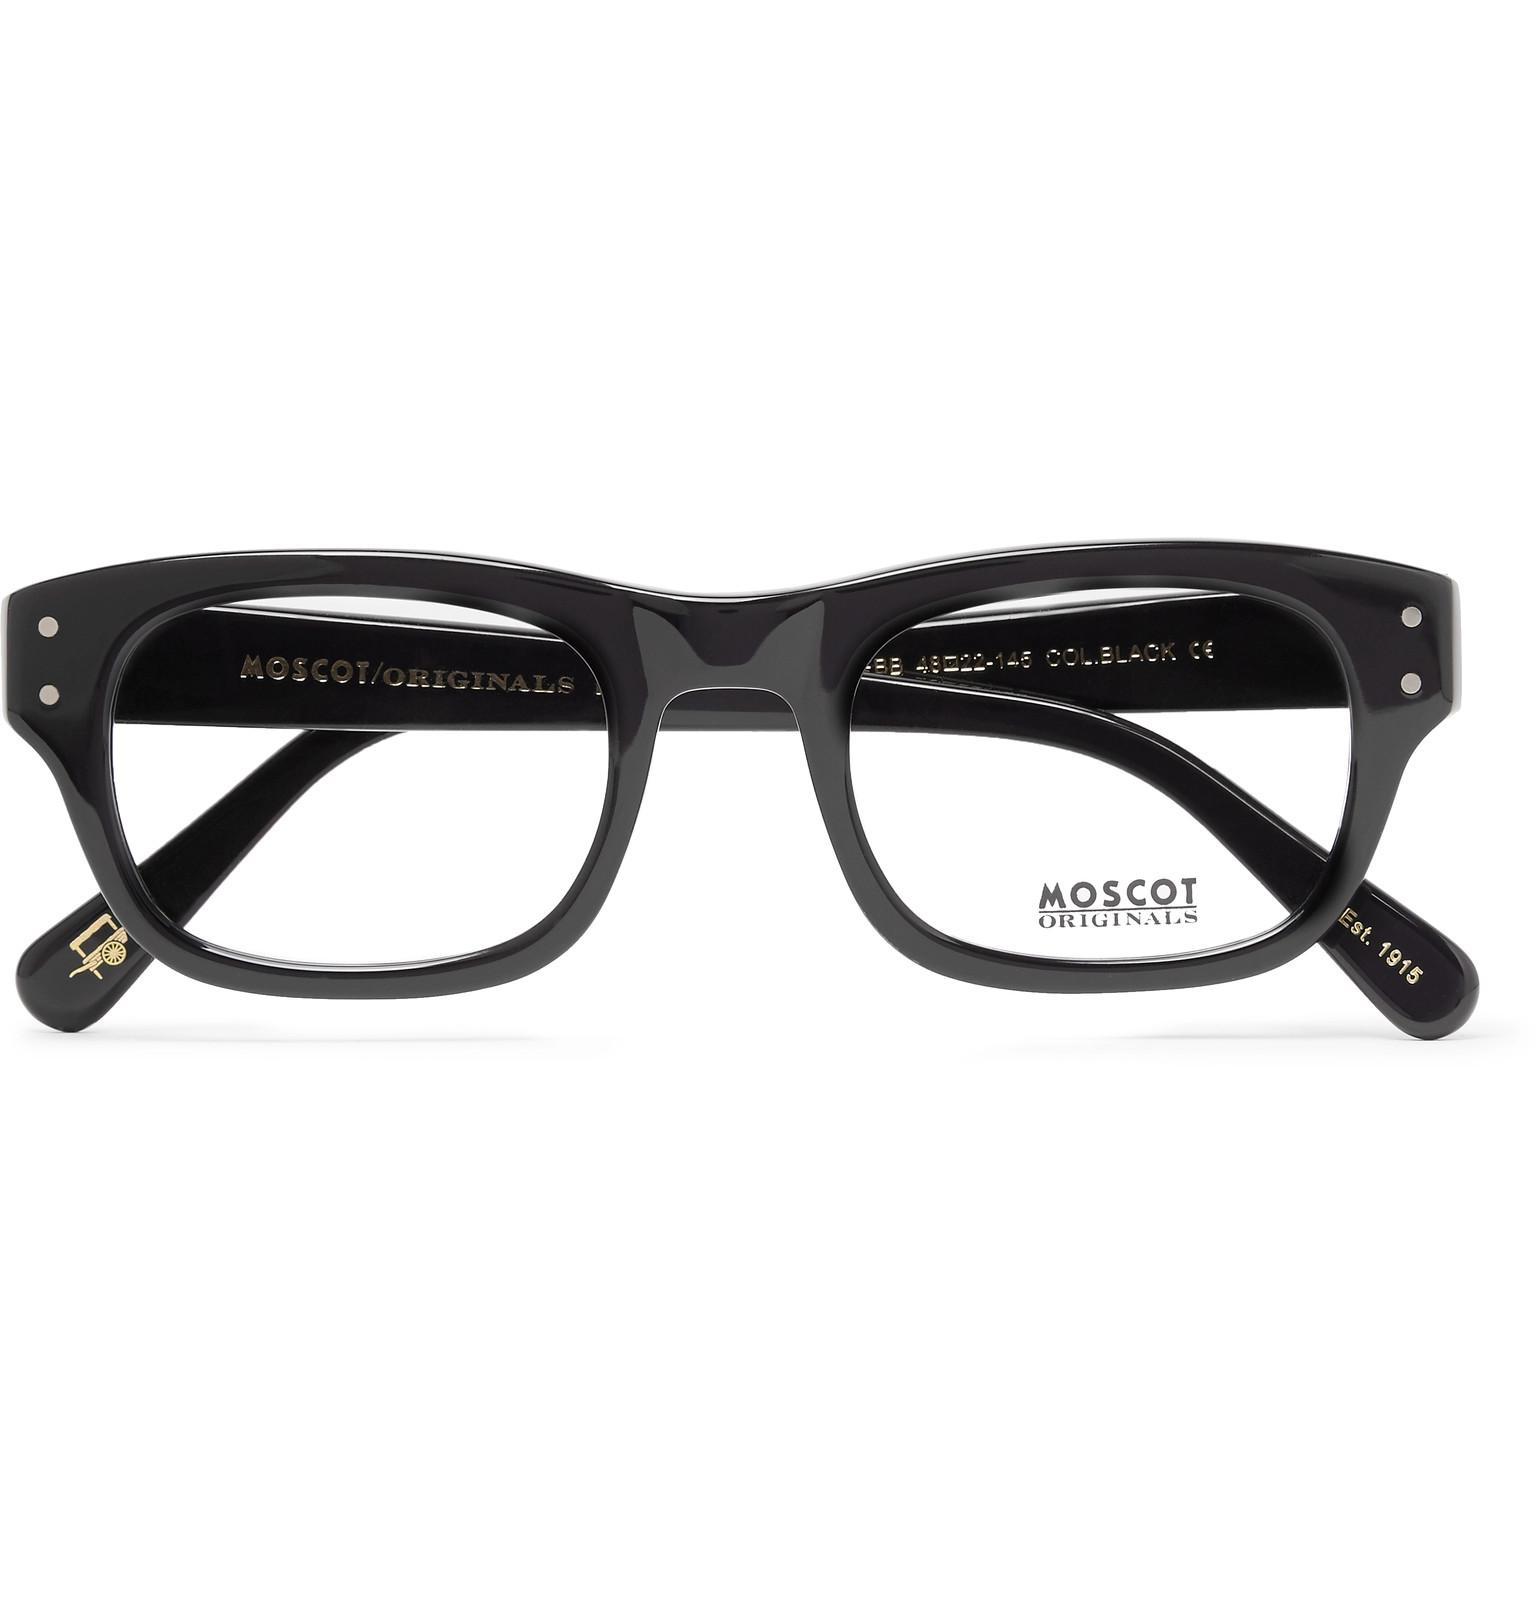 In Glasses Lyst For Men Square Black Acetate Optical Moscot Frame Nebb nYqwpxT